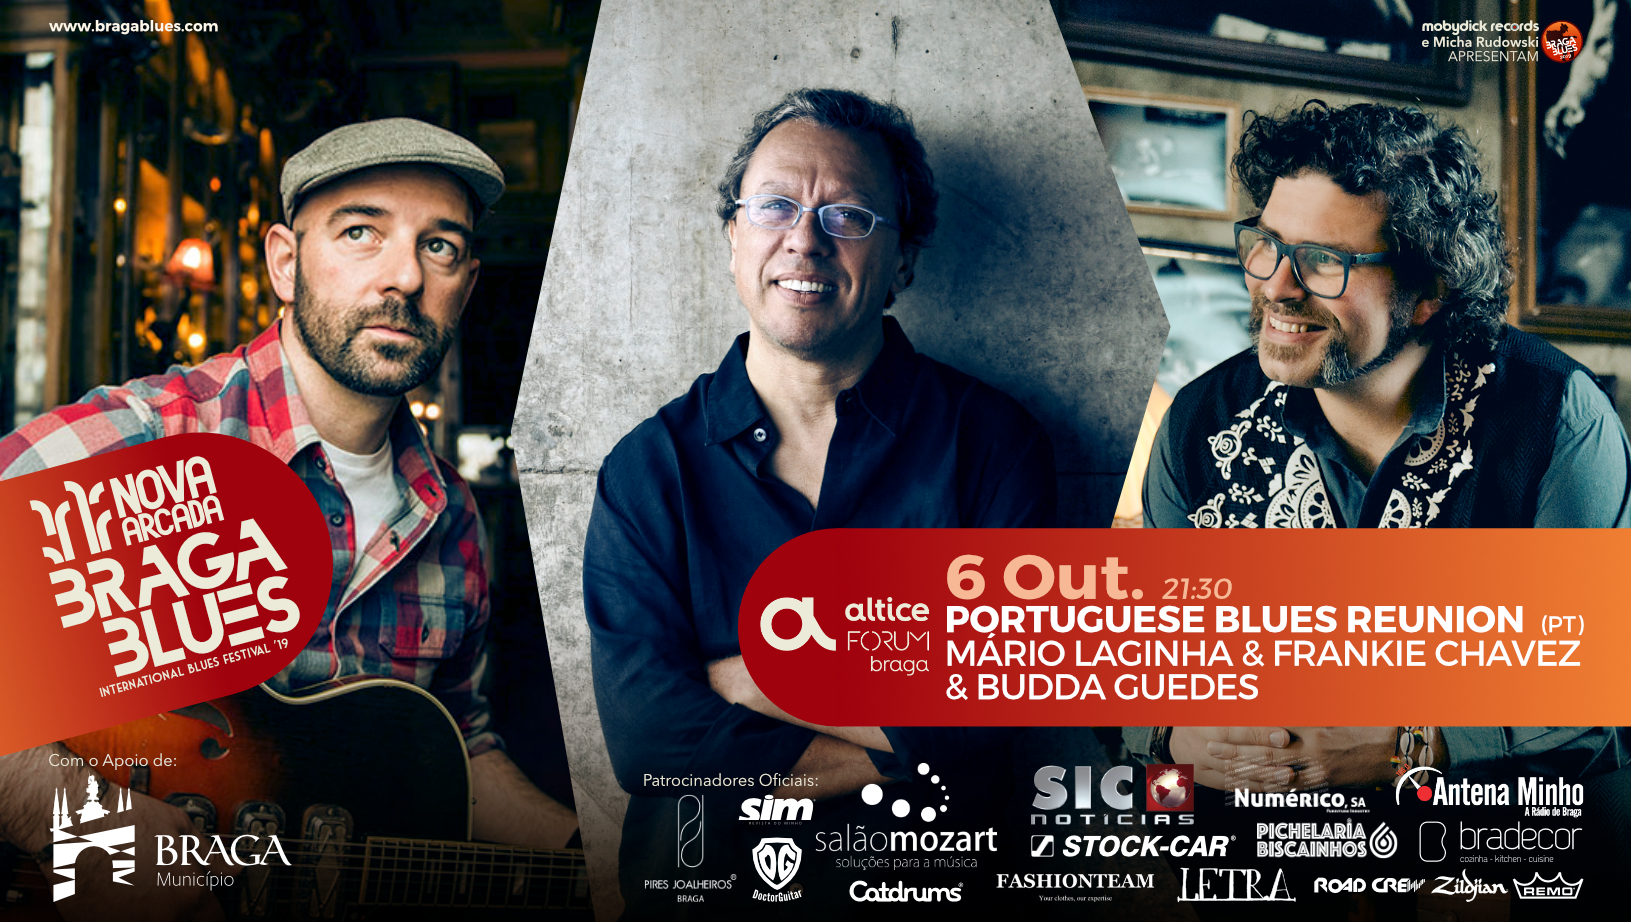 Portuguese Blues Reunion Nova Arcada Braga Blues